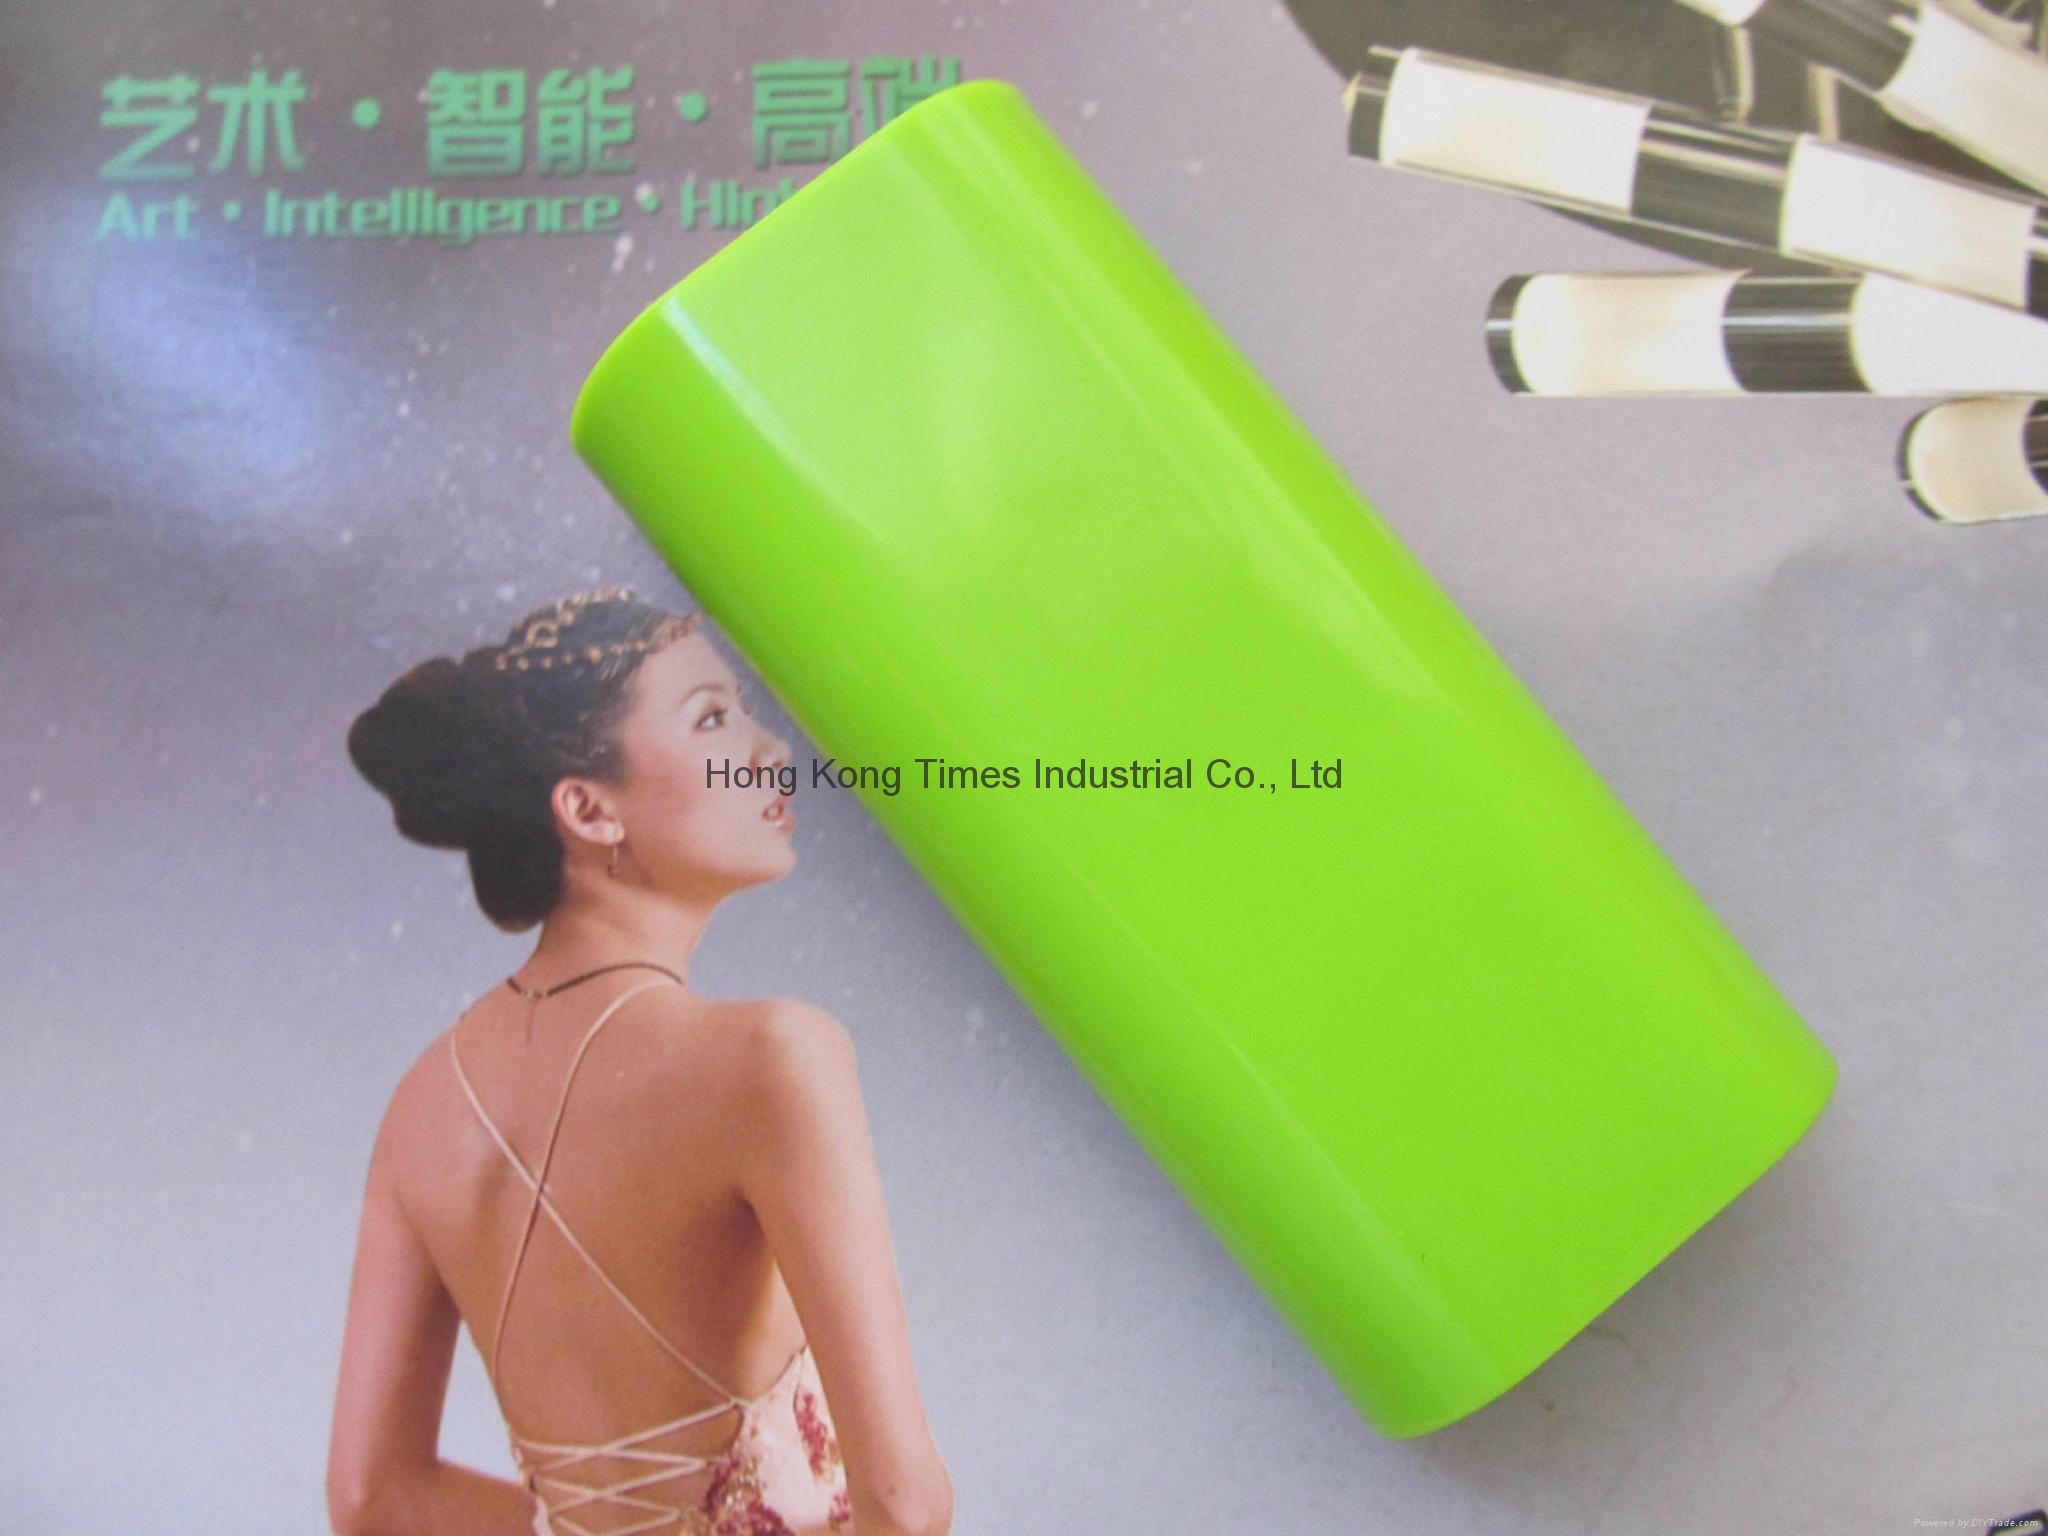 External Portable Battery Power Bank Charger For iPhone 6 6 Plus 5 5s 5c For S6 2